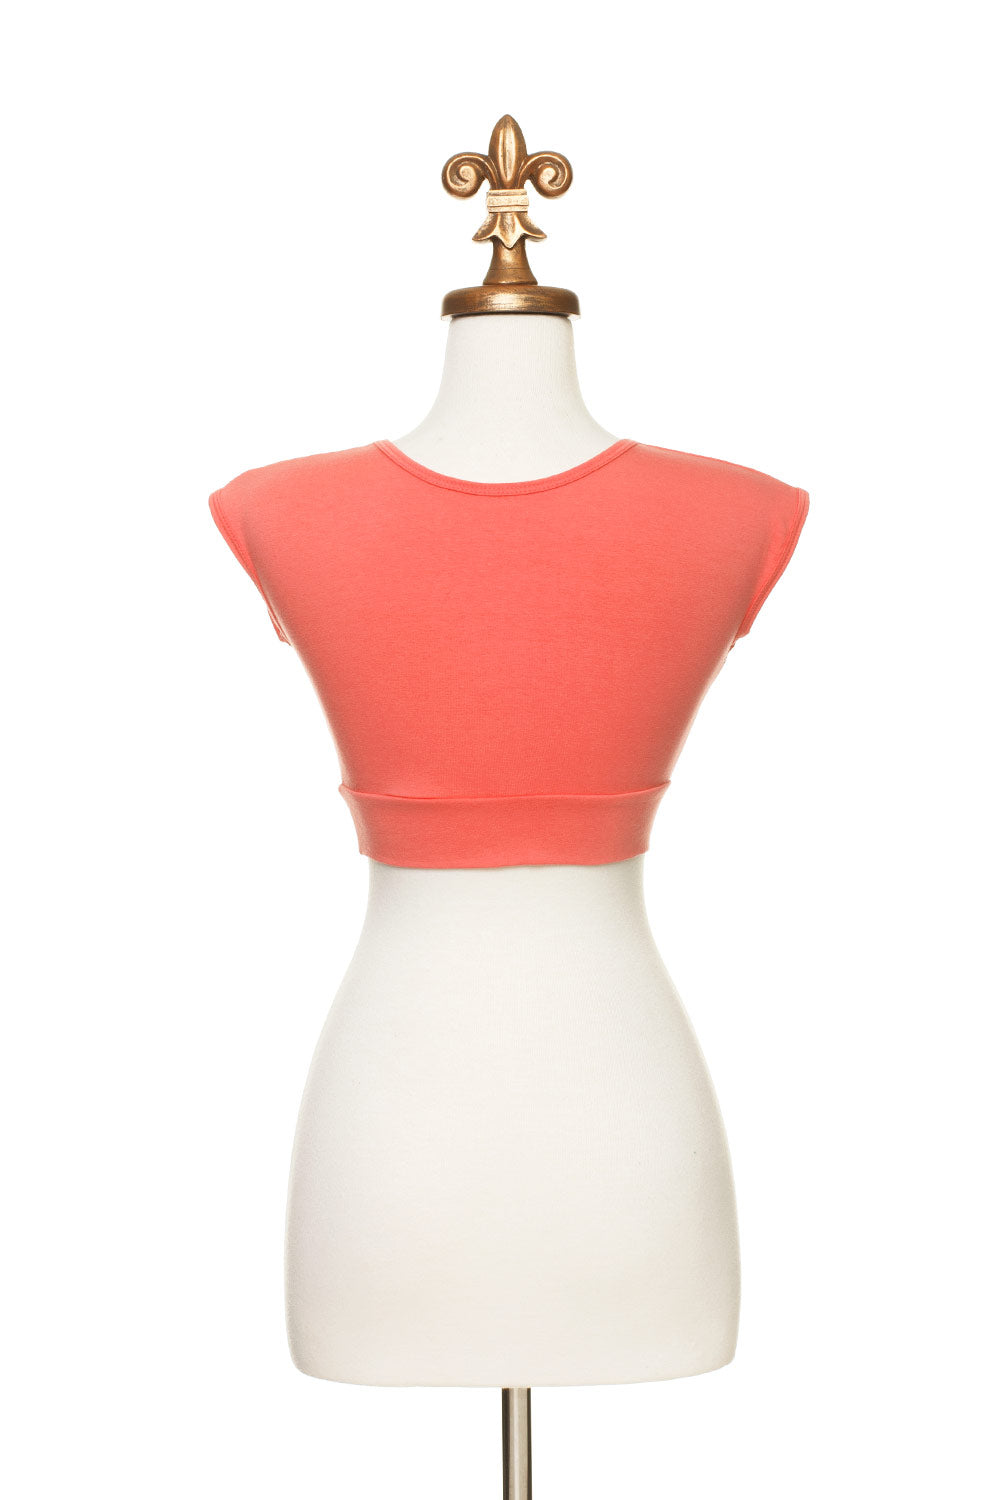 Type 3 Basic Cap HALFTEE in Coral